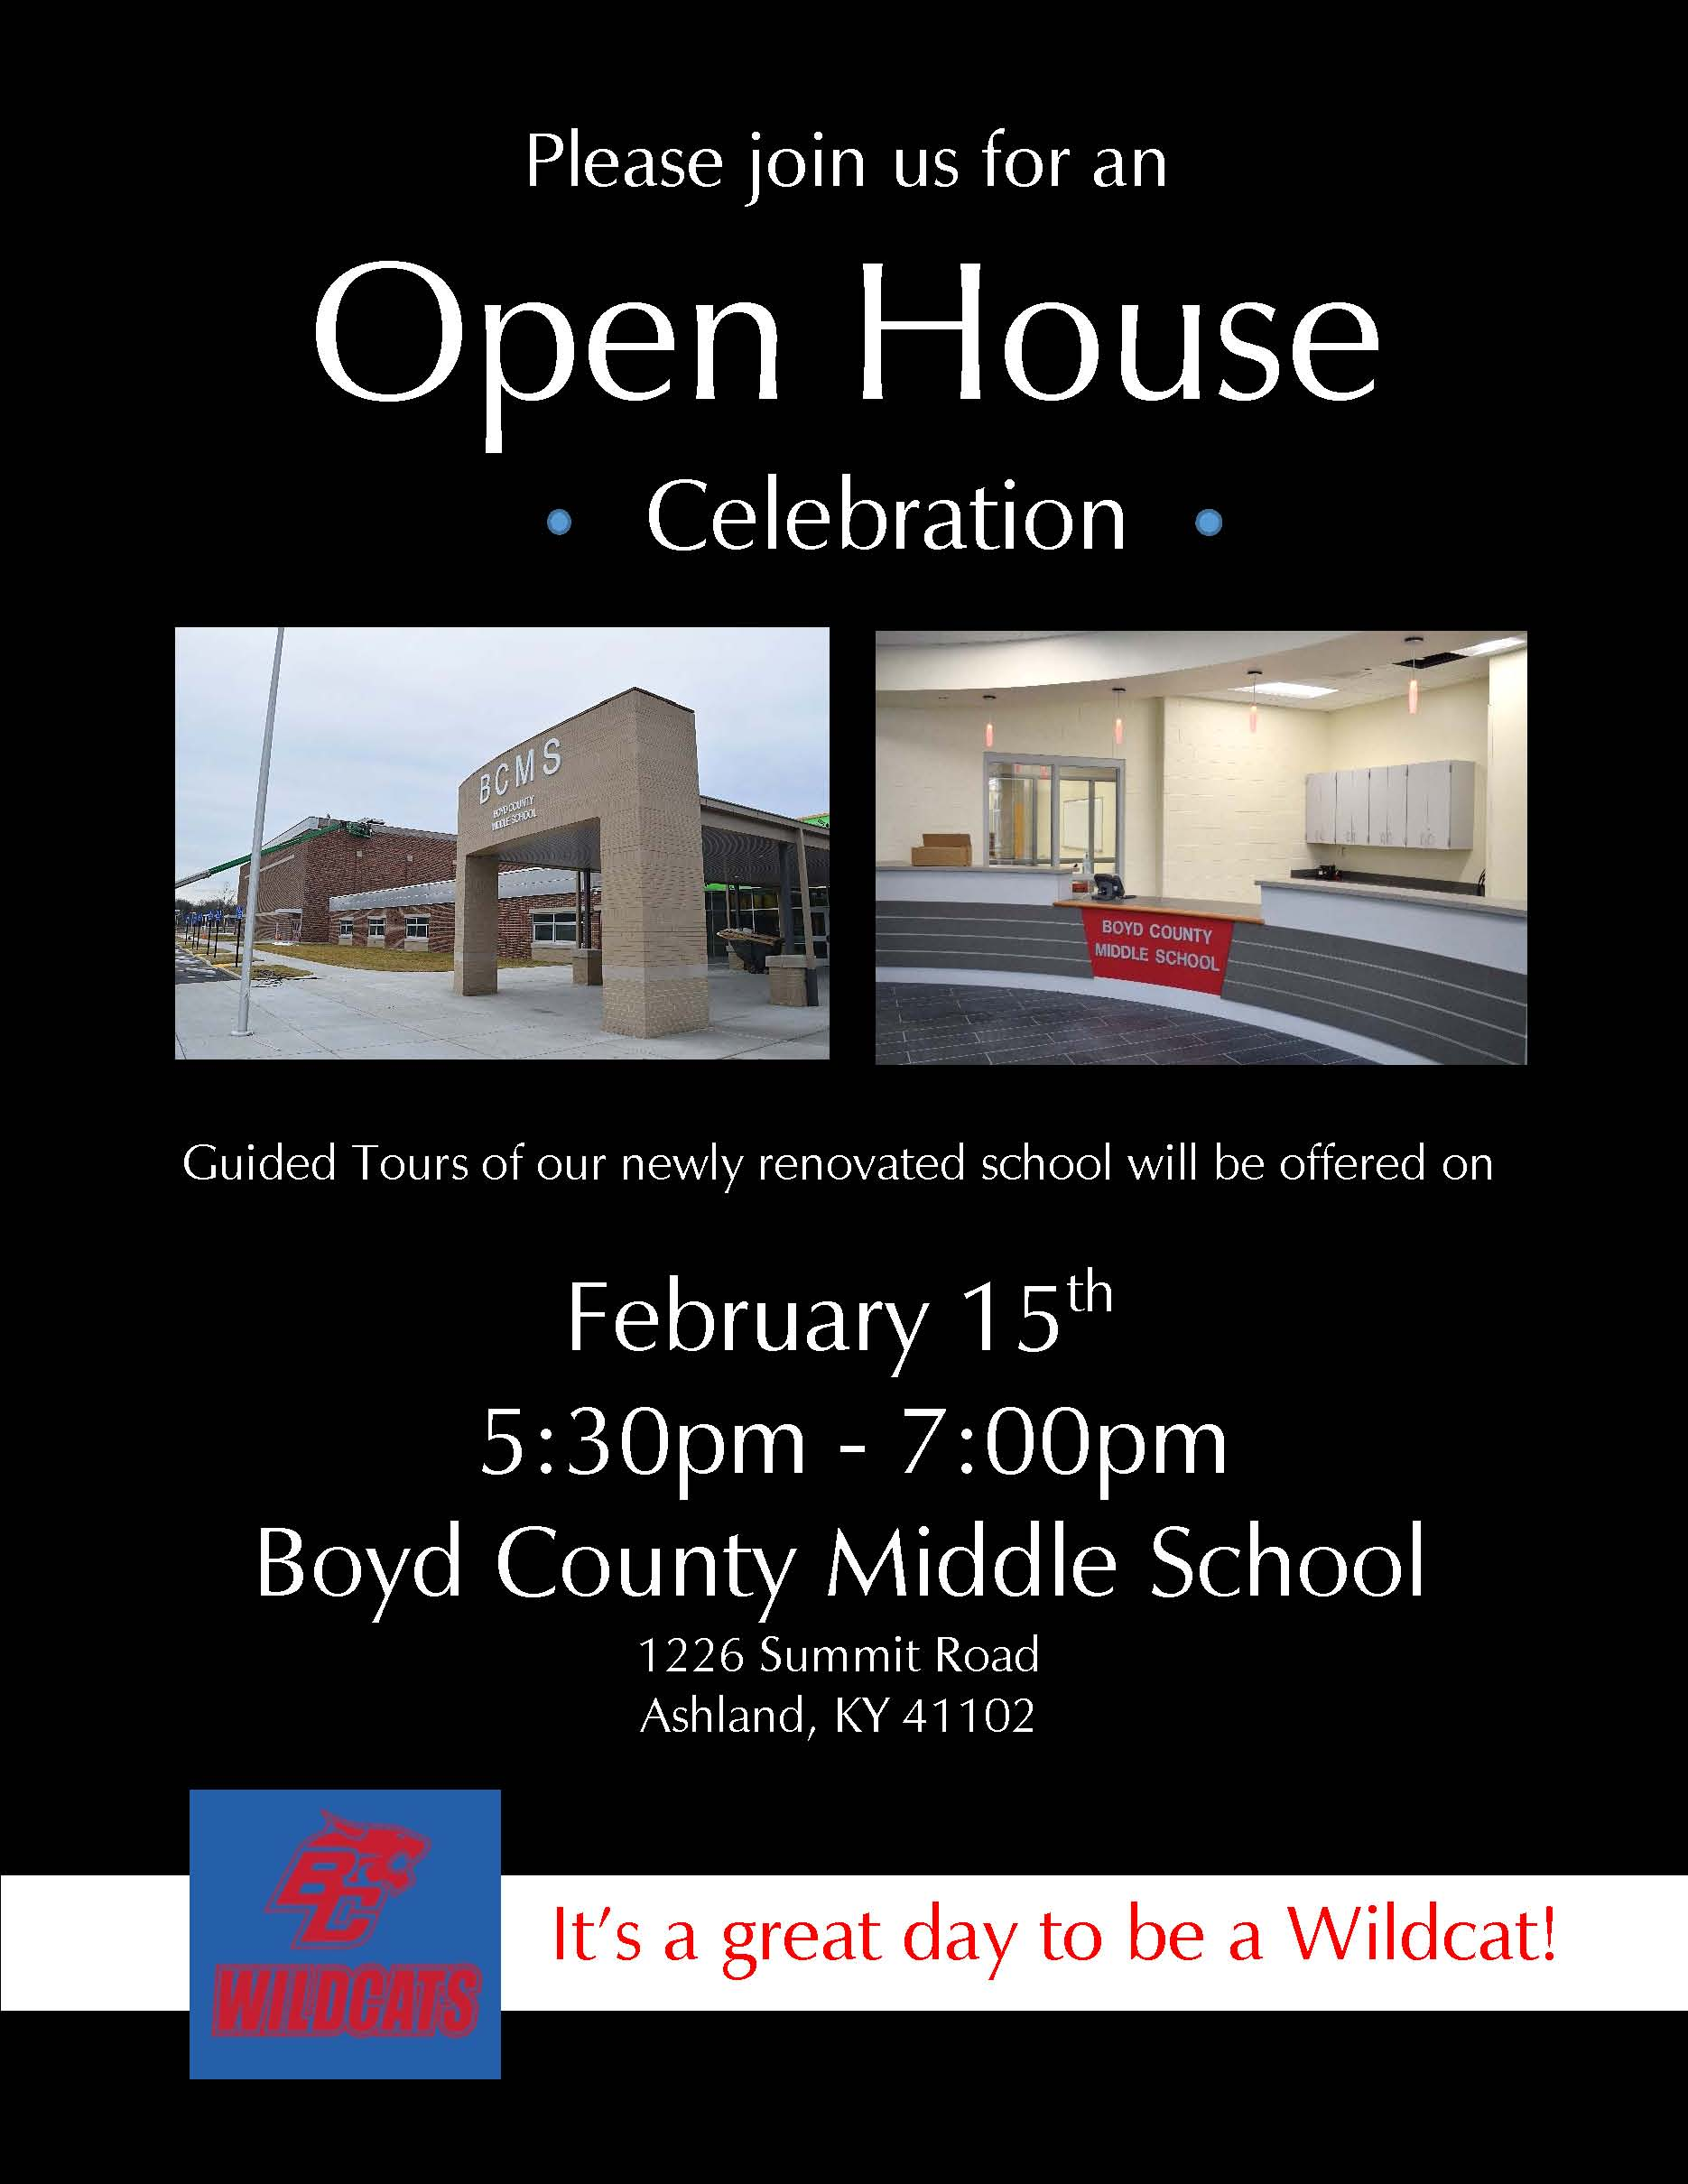 Flyer announcing the Open House celebrating the grand re-opening of Boyd County Middle School.